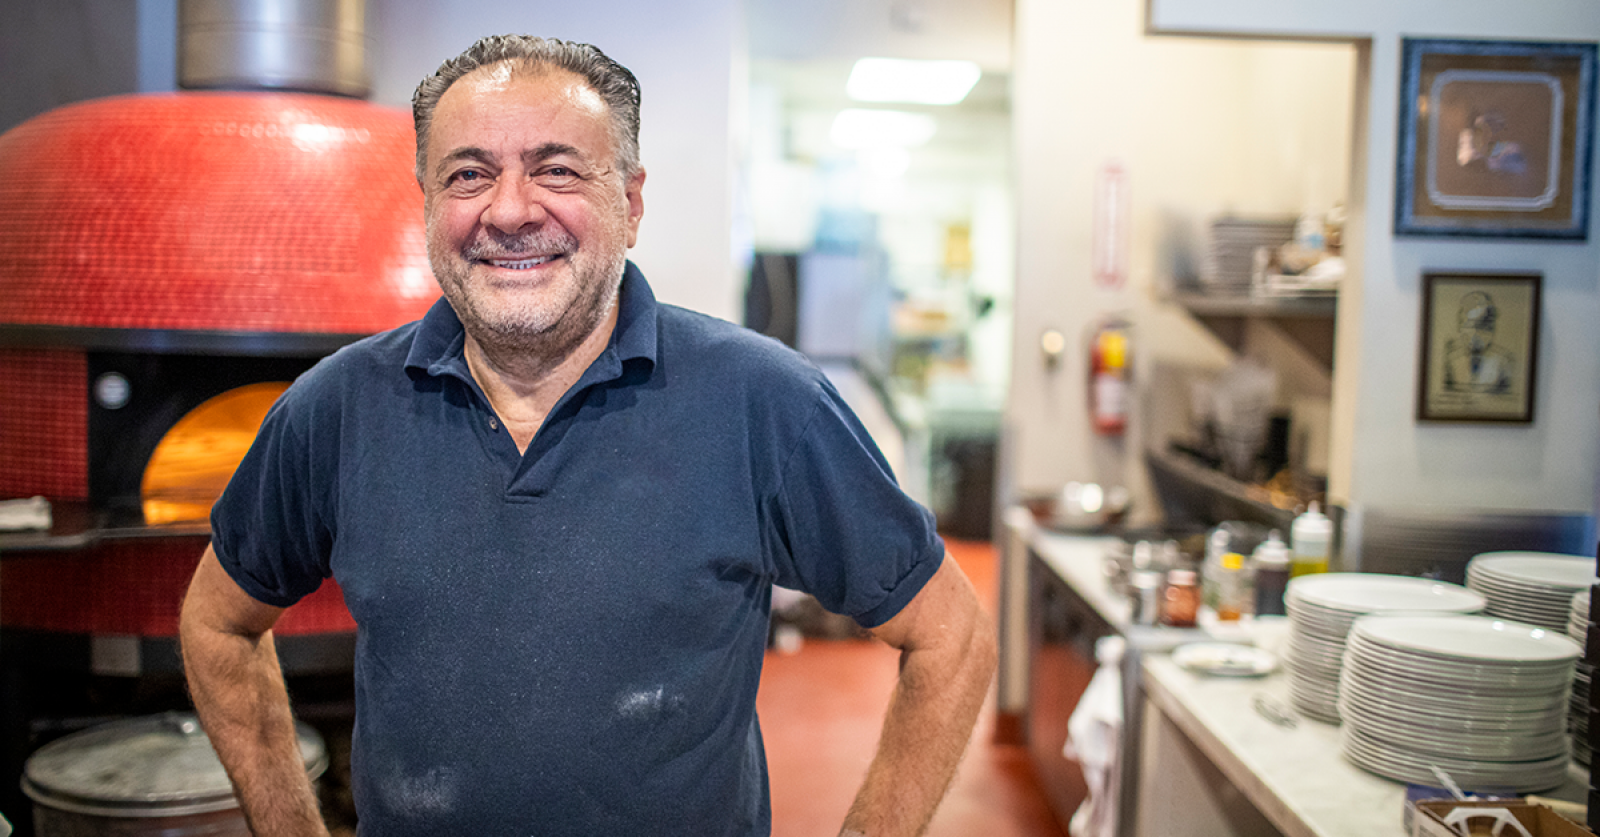 Pizzeria owner banner image